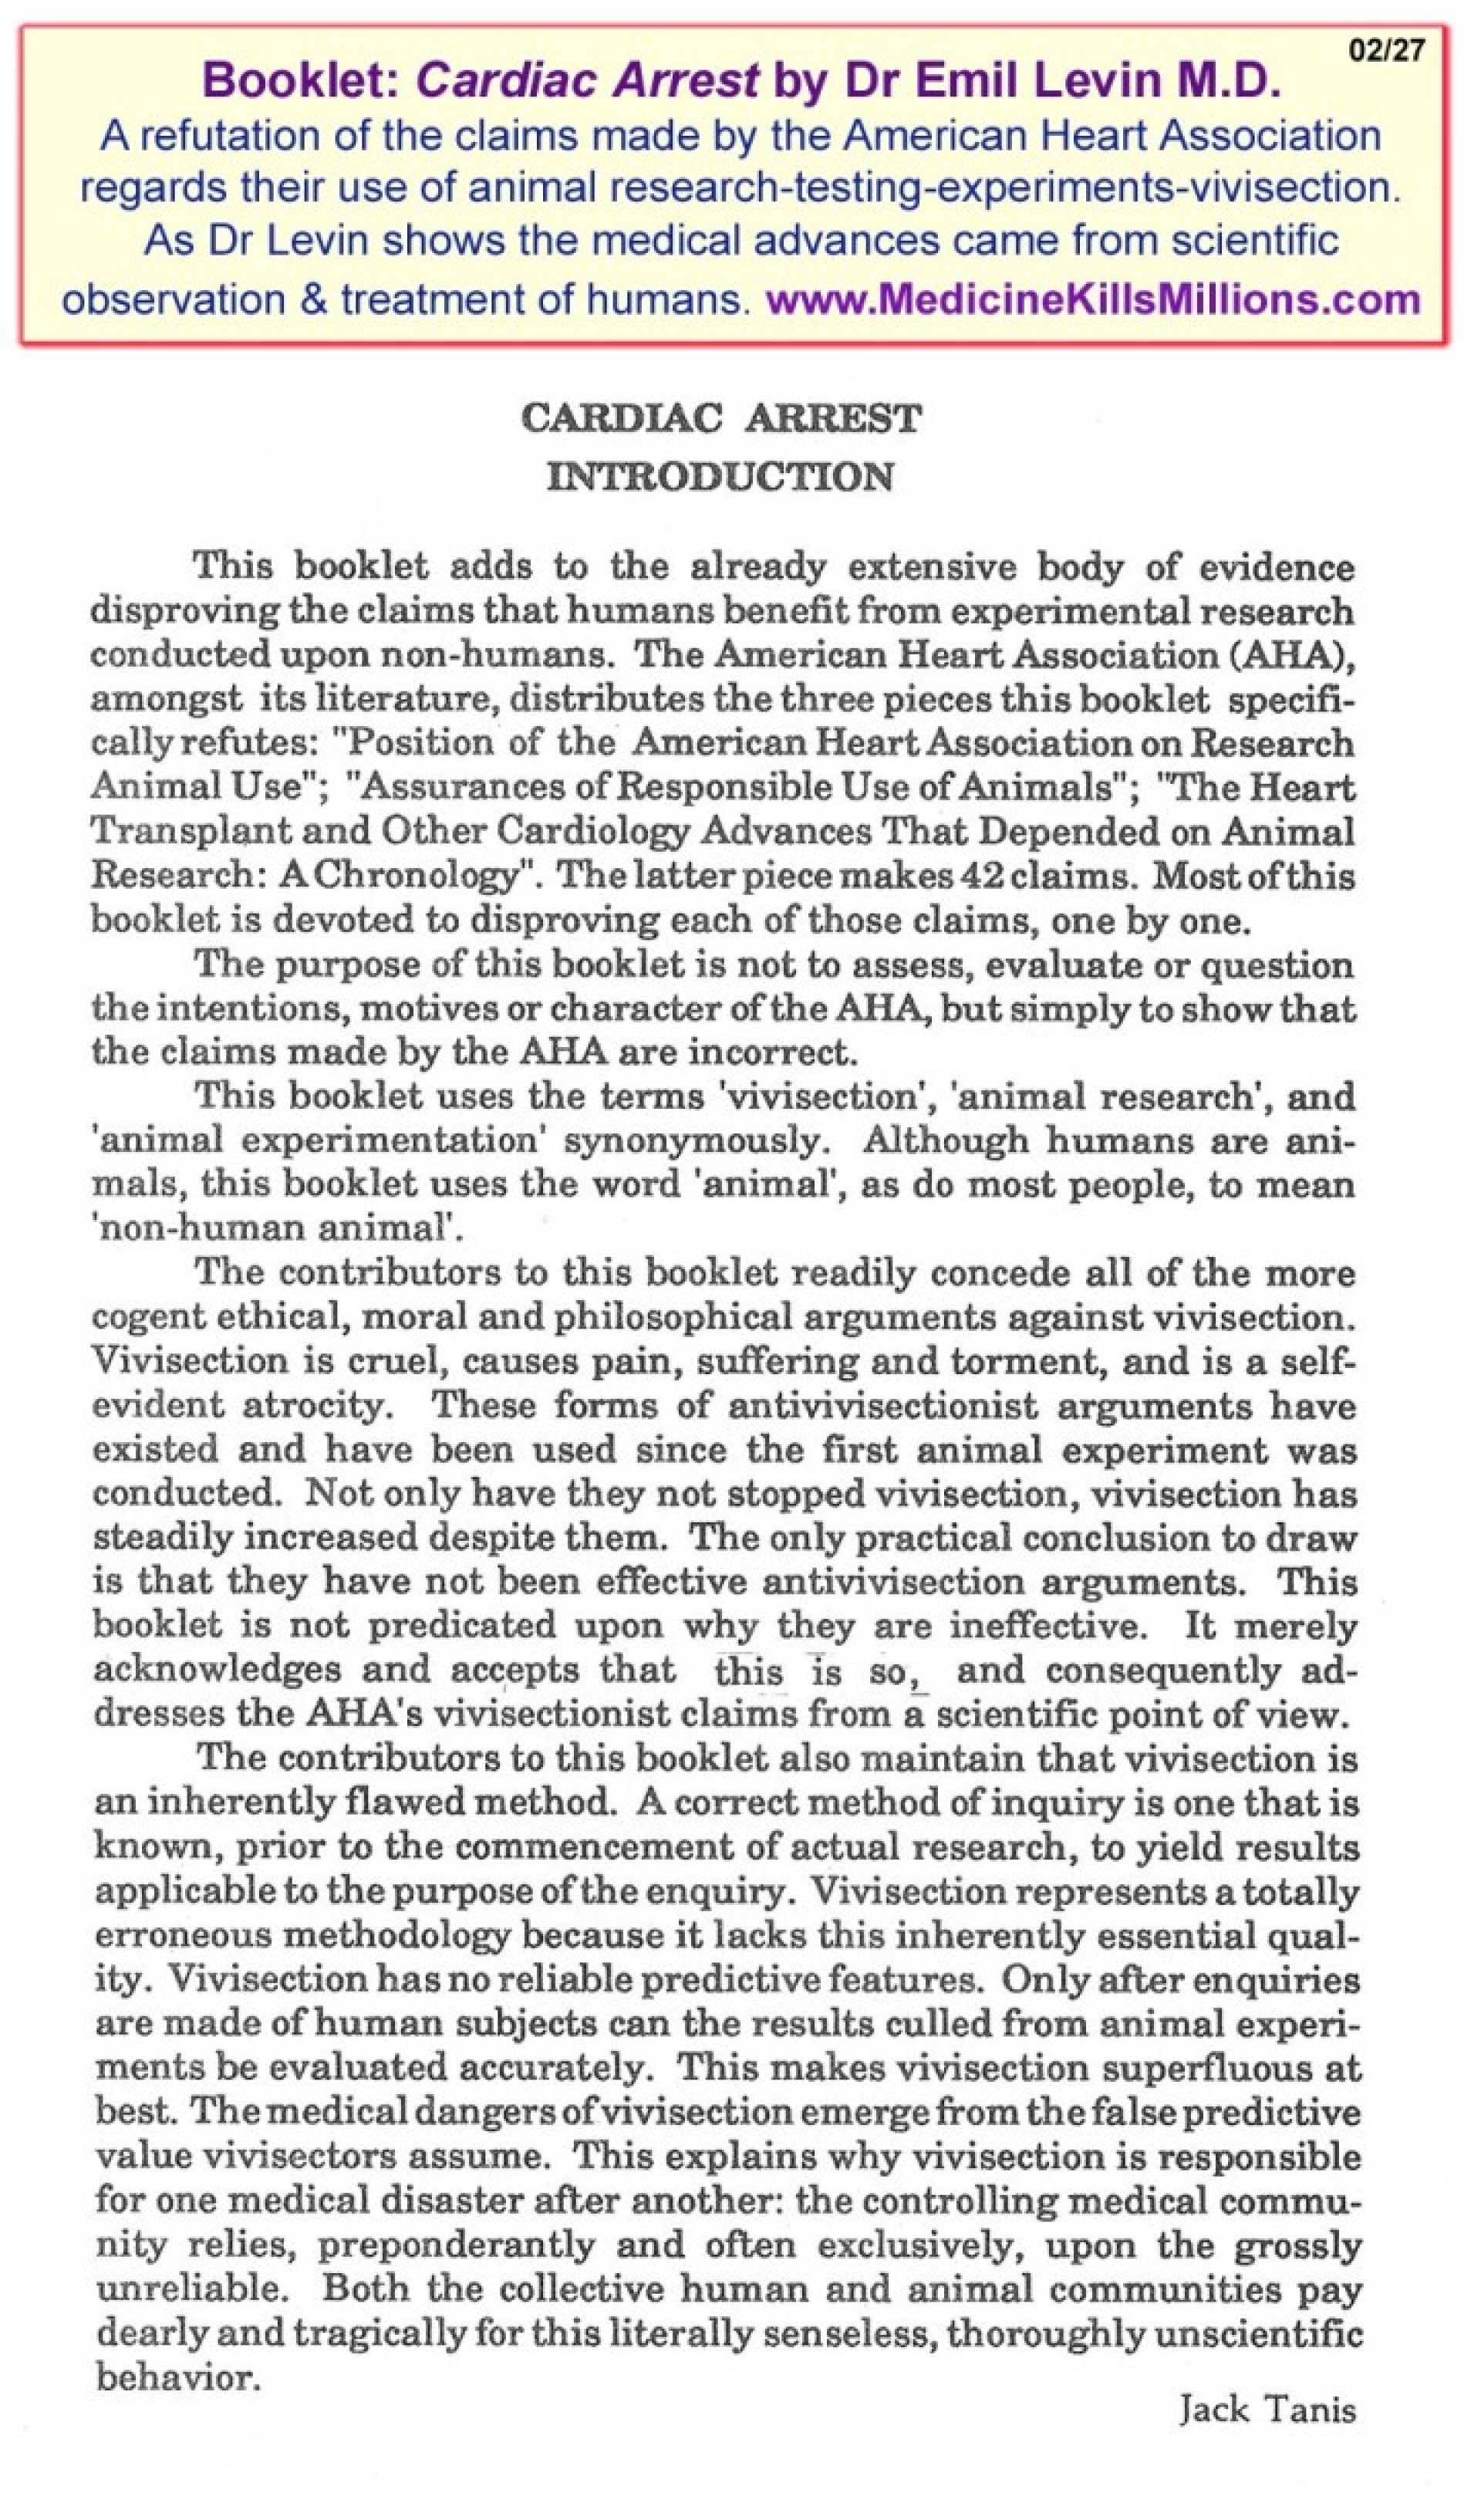 017 Cardiac Arrest Introduction Refutations Of The Unscientific Animal Experiments Testing Research Claims By20american Heart Associationresize7202c1225r Wonderful Paper 1920